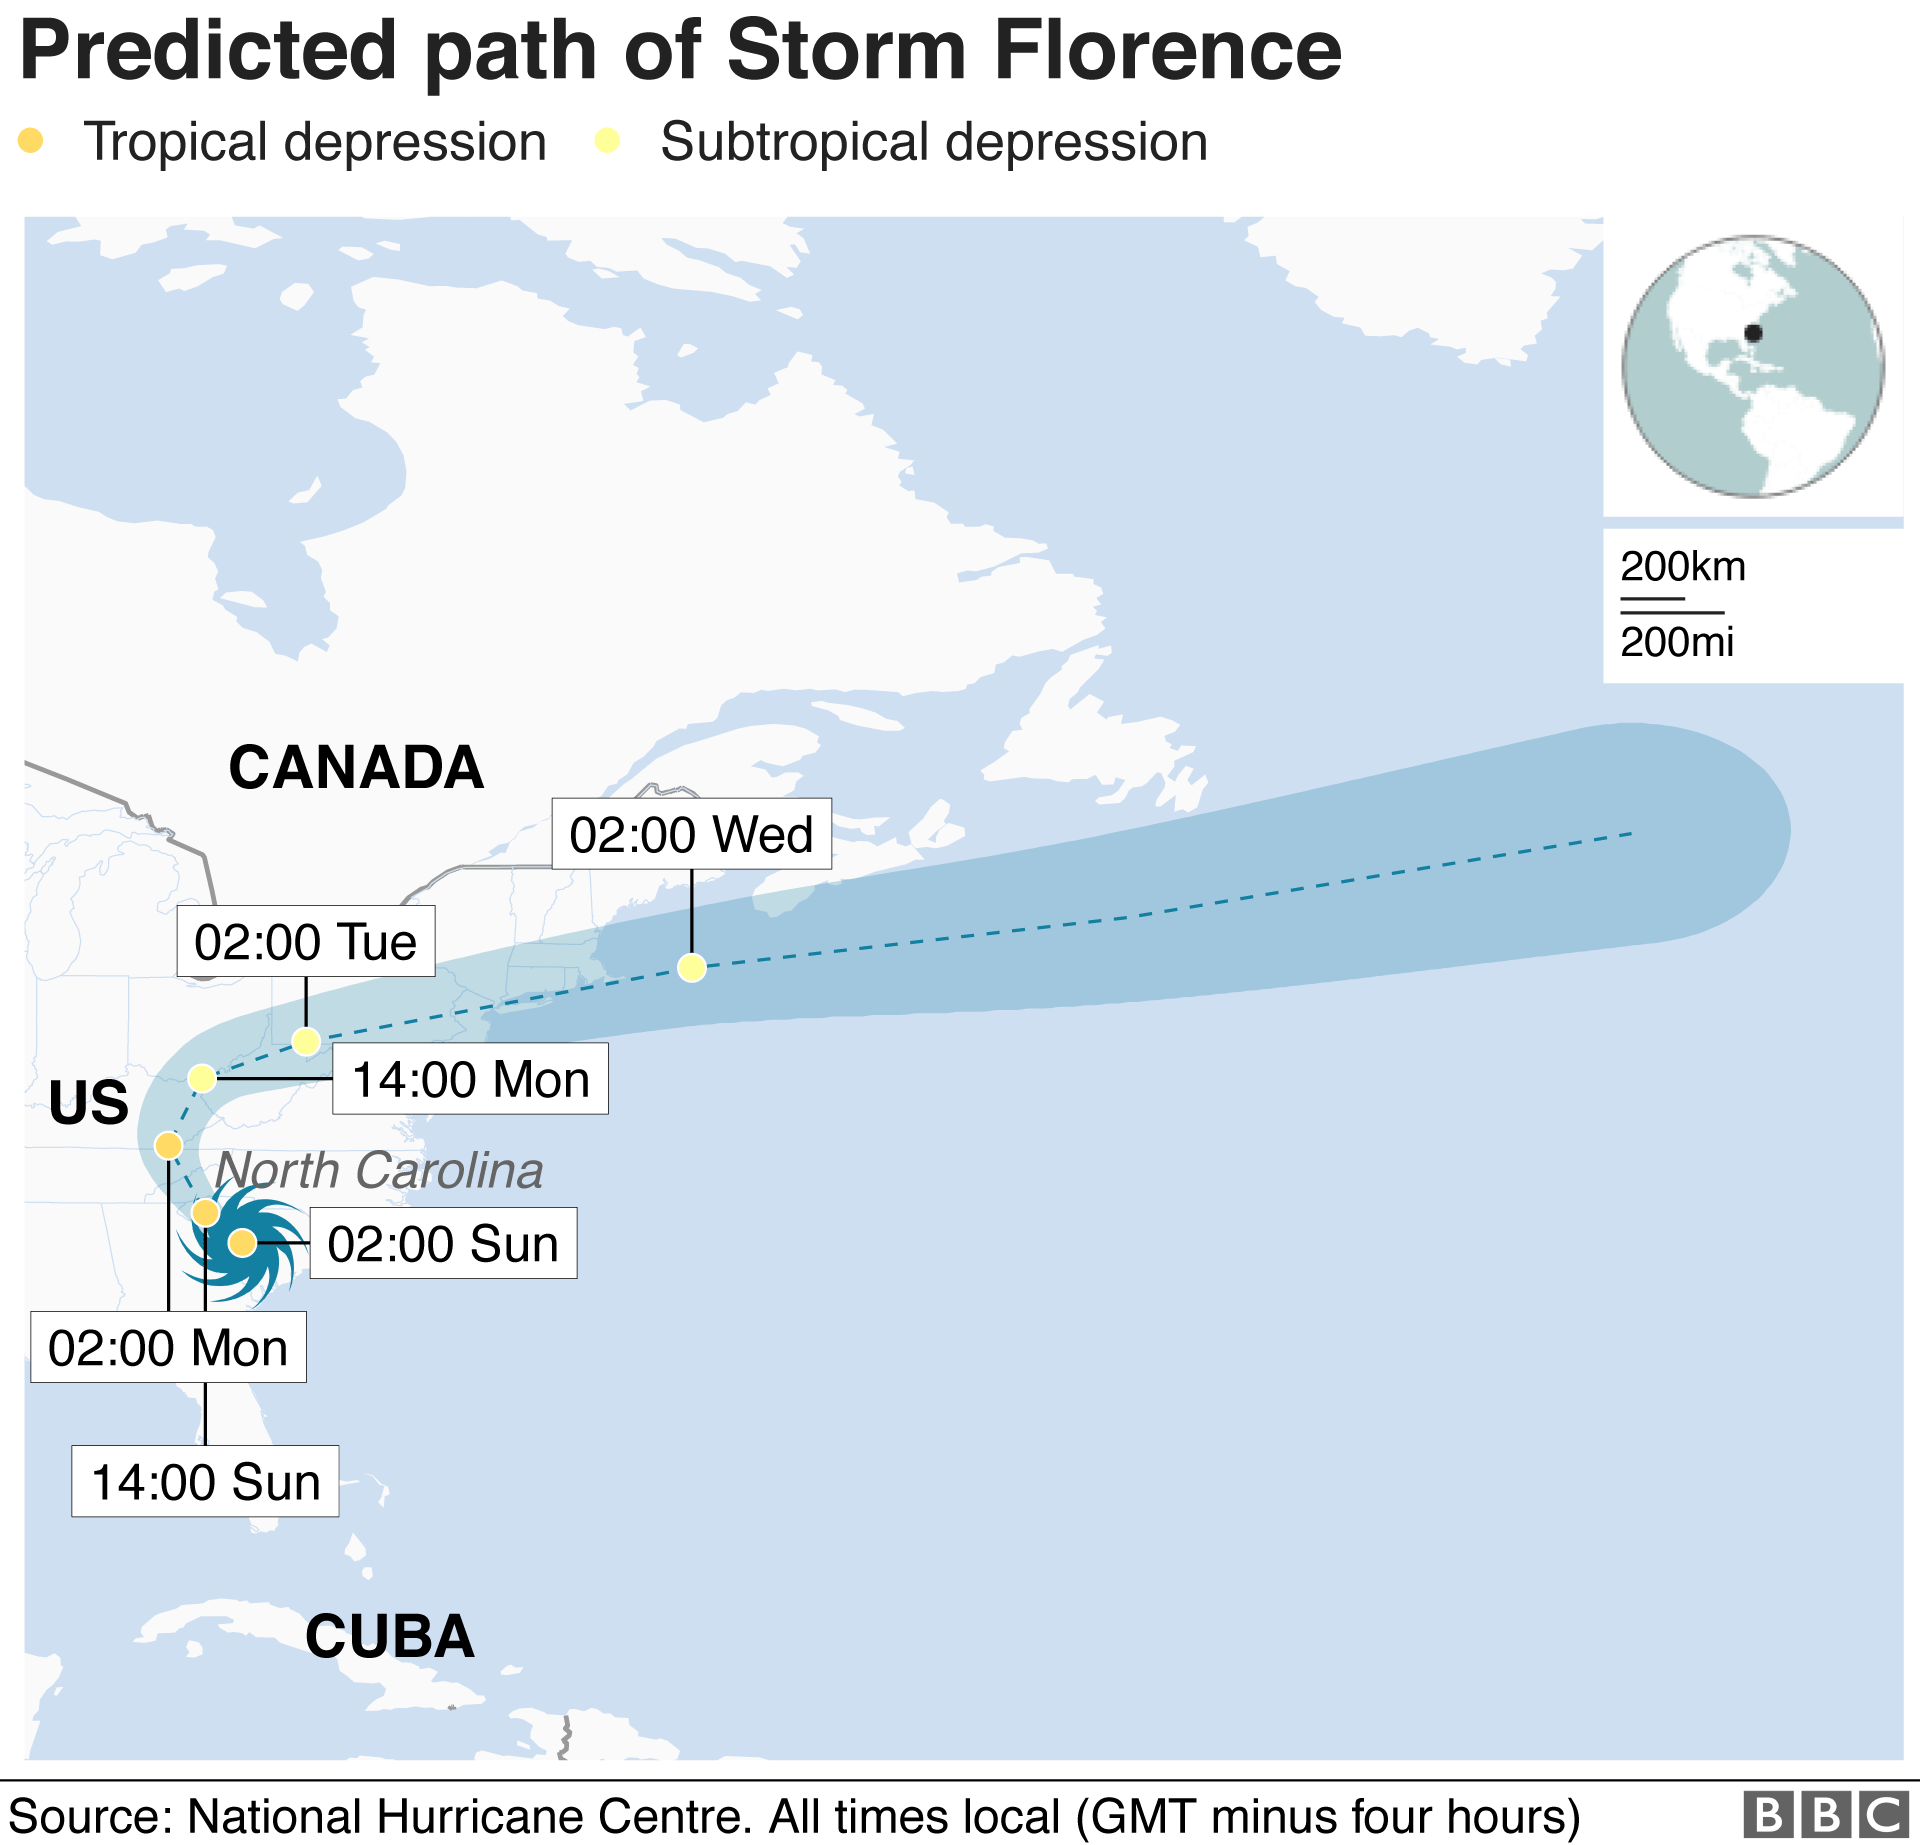 Predicted path of storm Florence